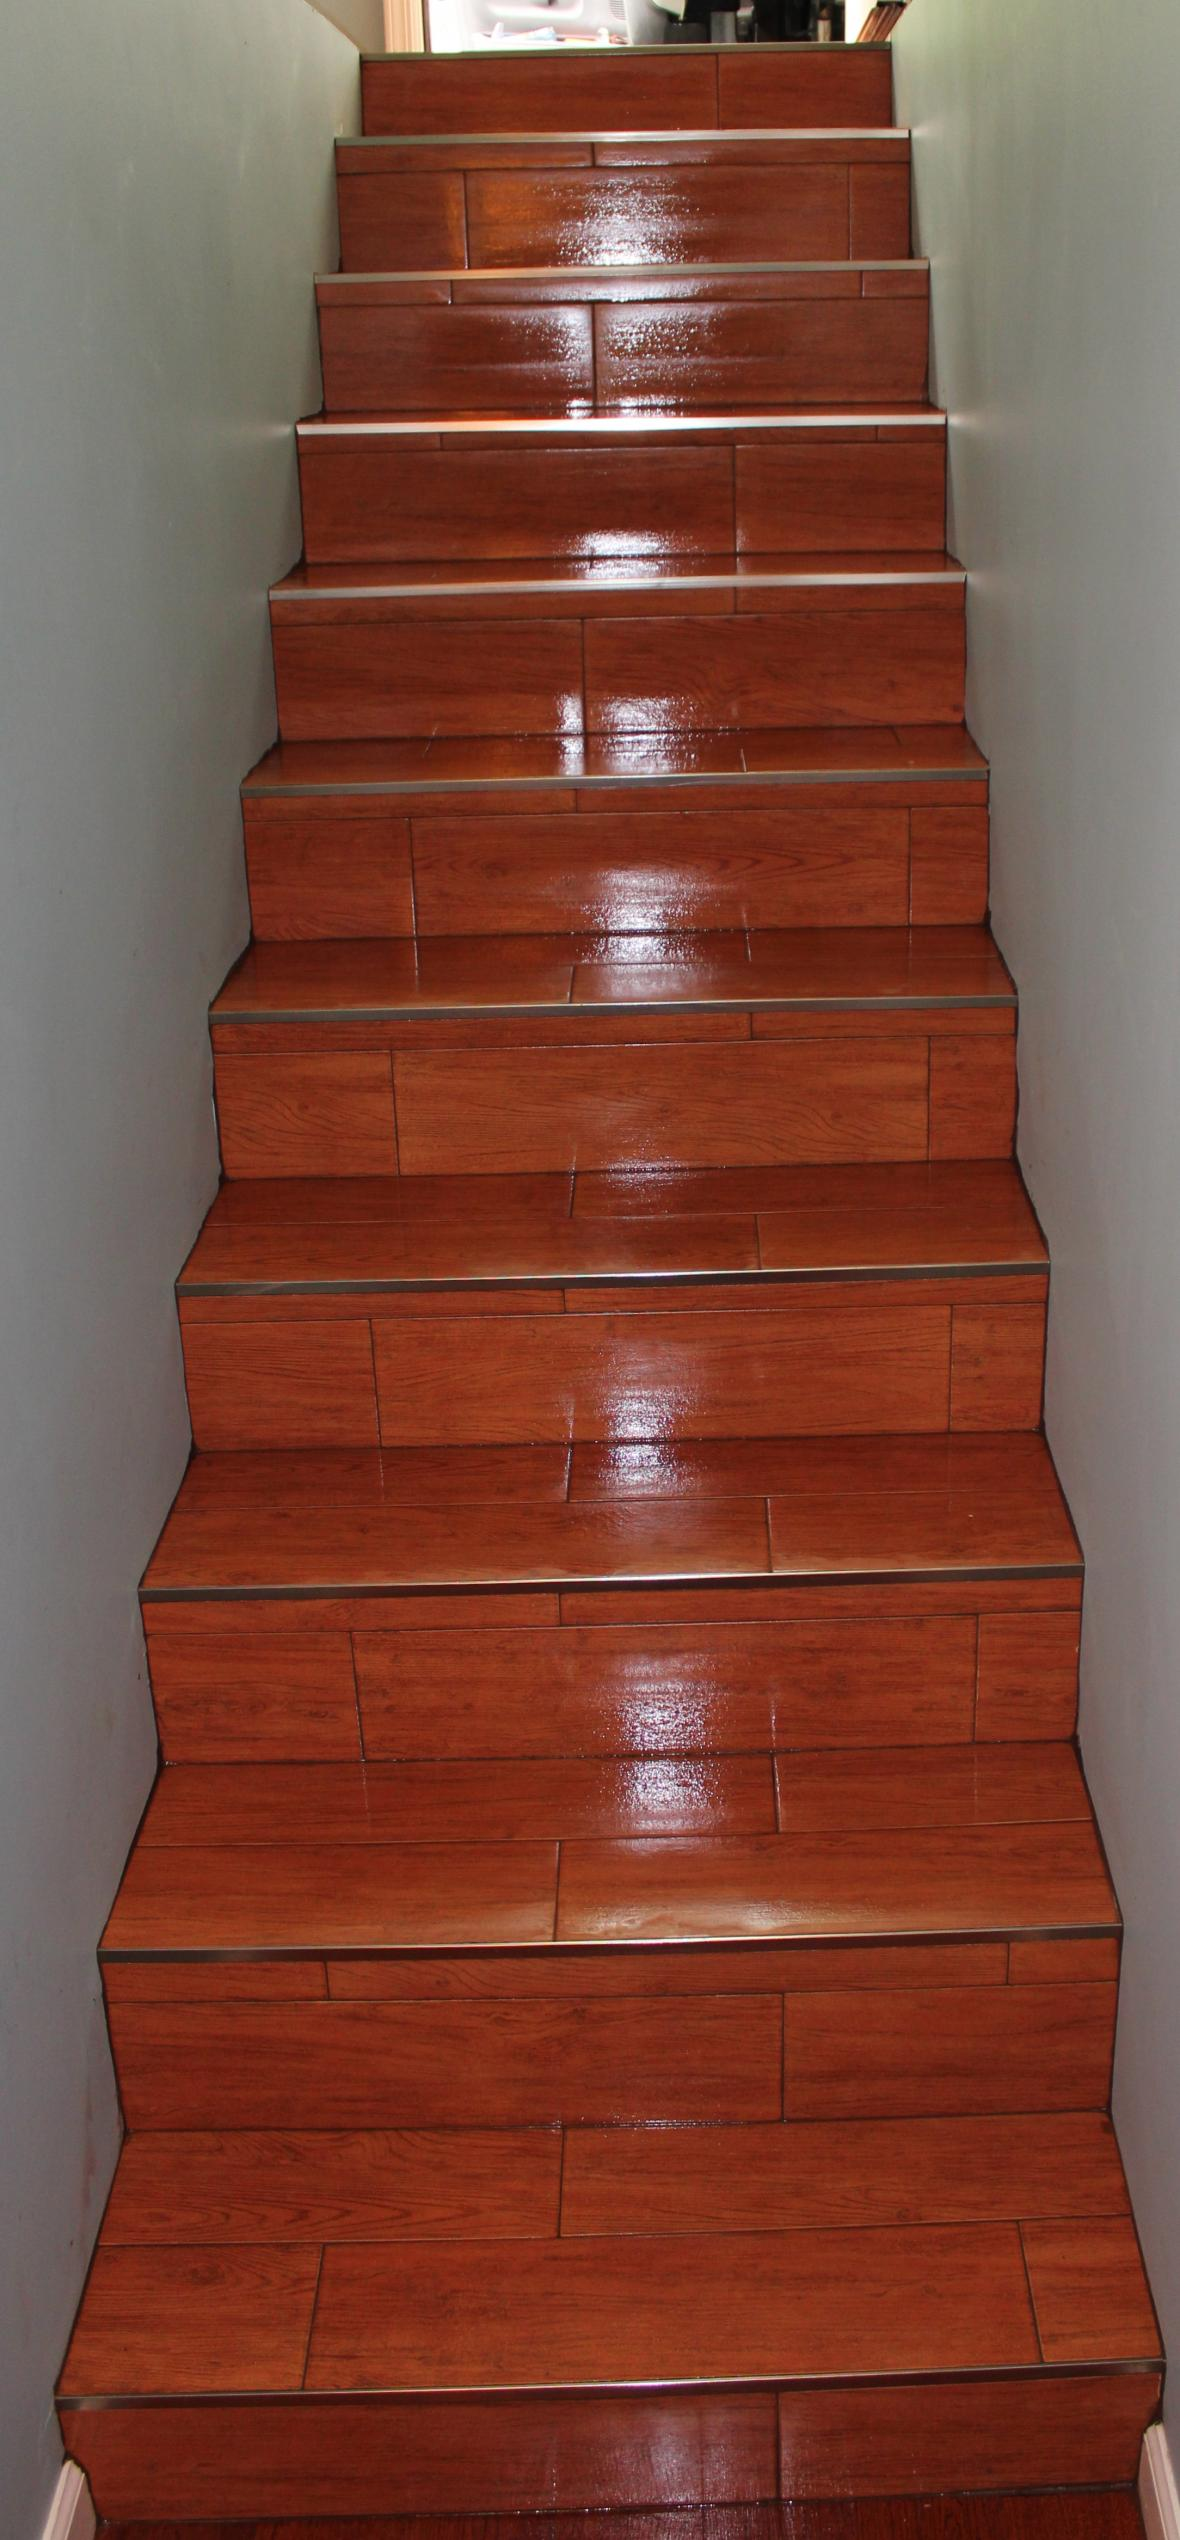 Wood Tile Stairs New Jersey Custom Tile